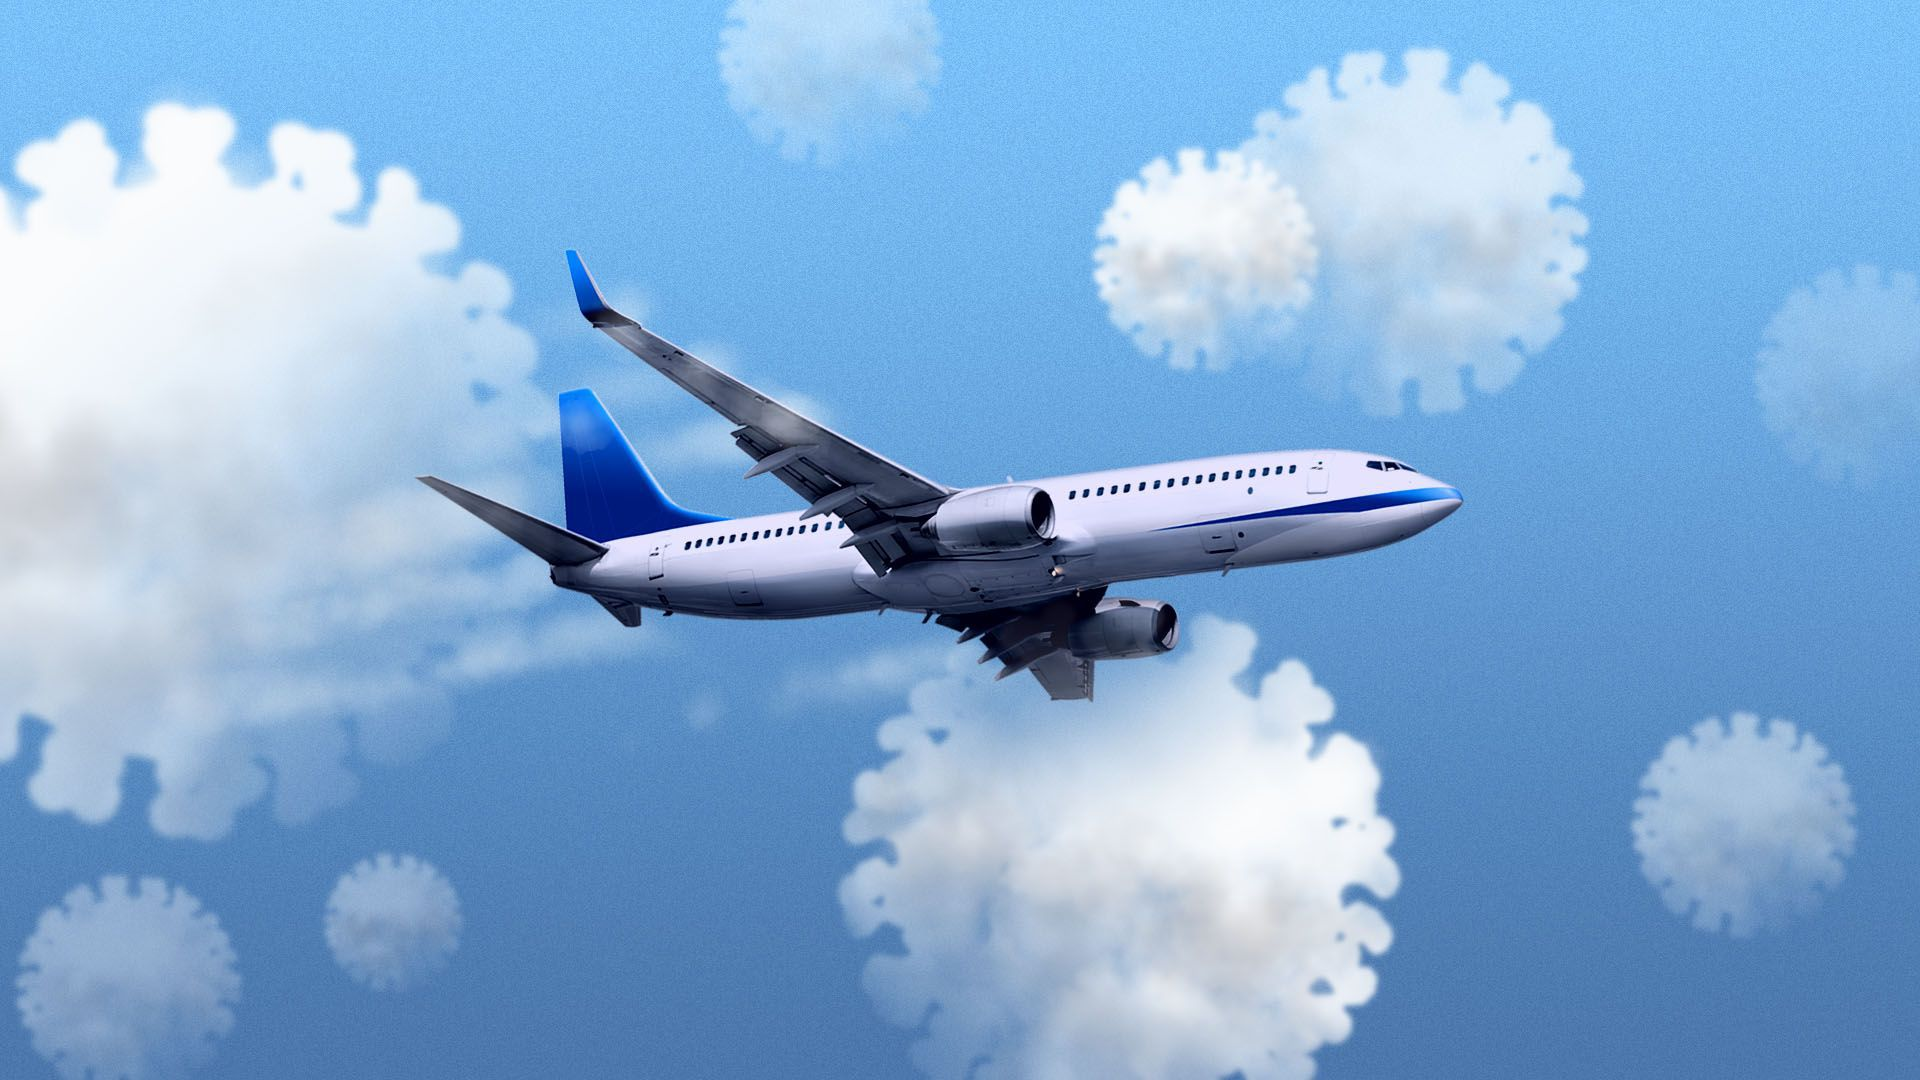 Airlines pack in customers like there's no coronavirus